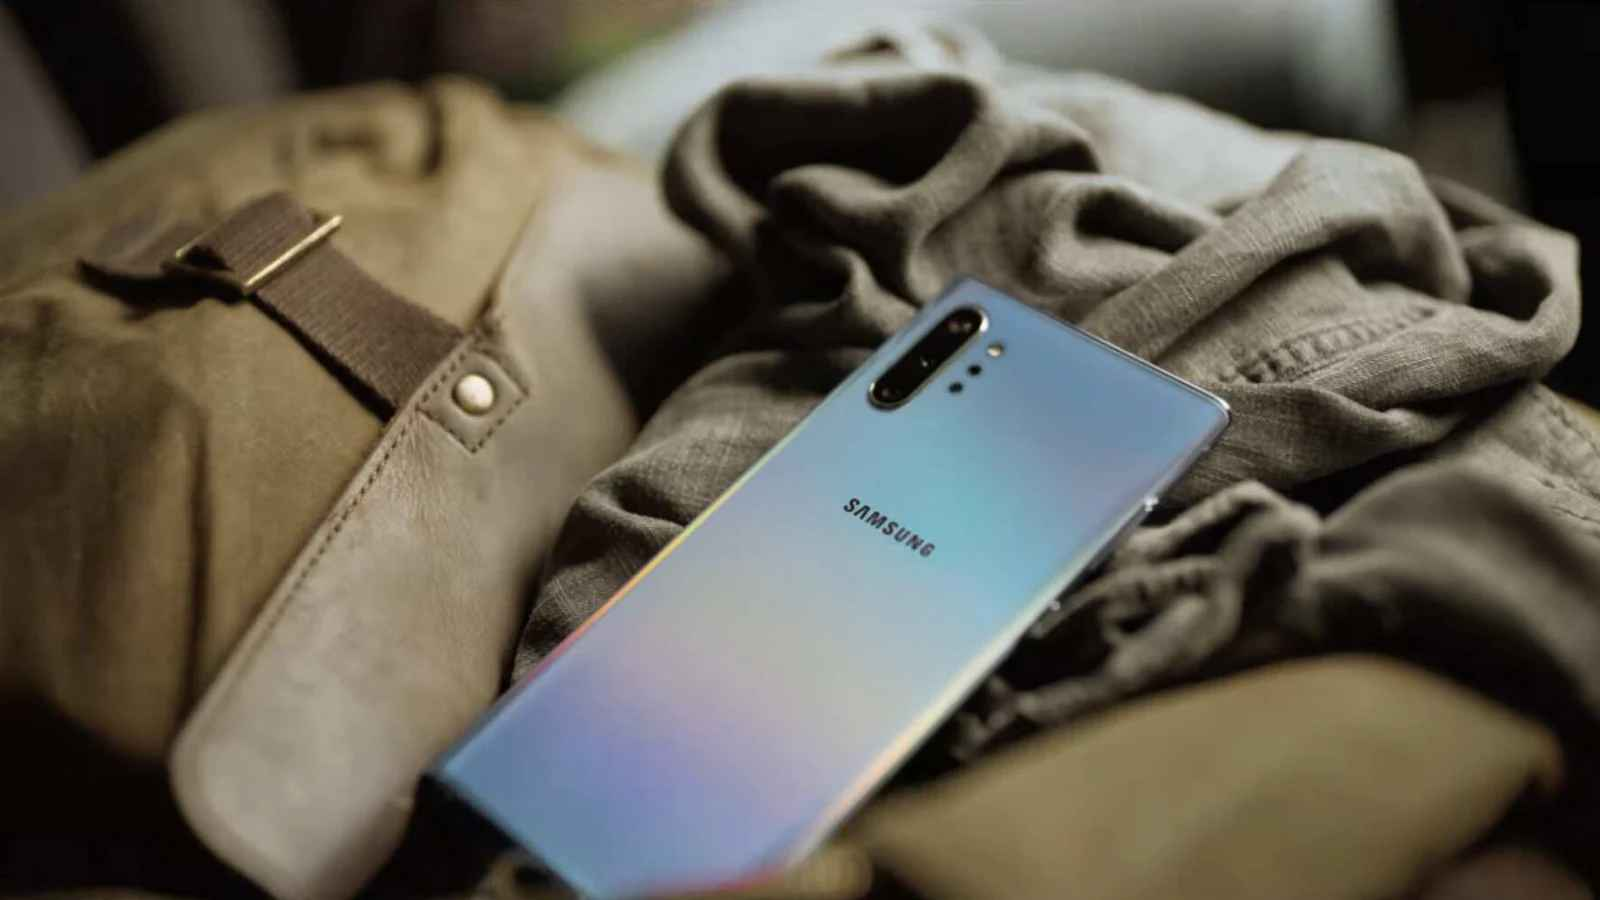 Samsung Galaxy Note 10 & Note 10 Lite Grabbed June 2021 Security Update In India - The Android Rush